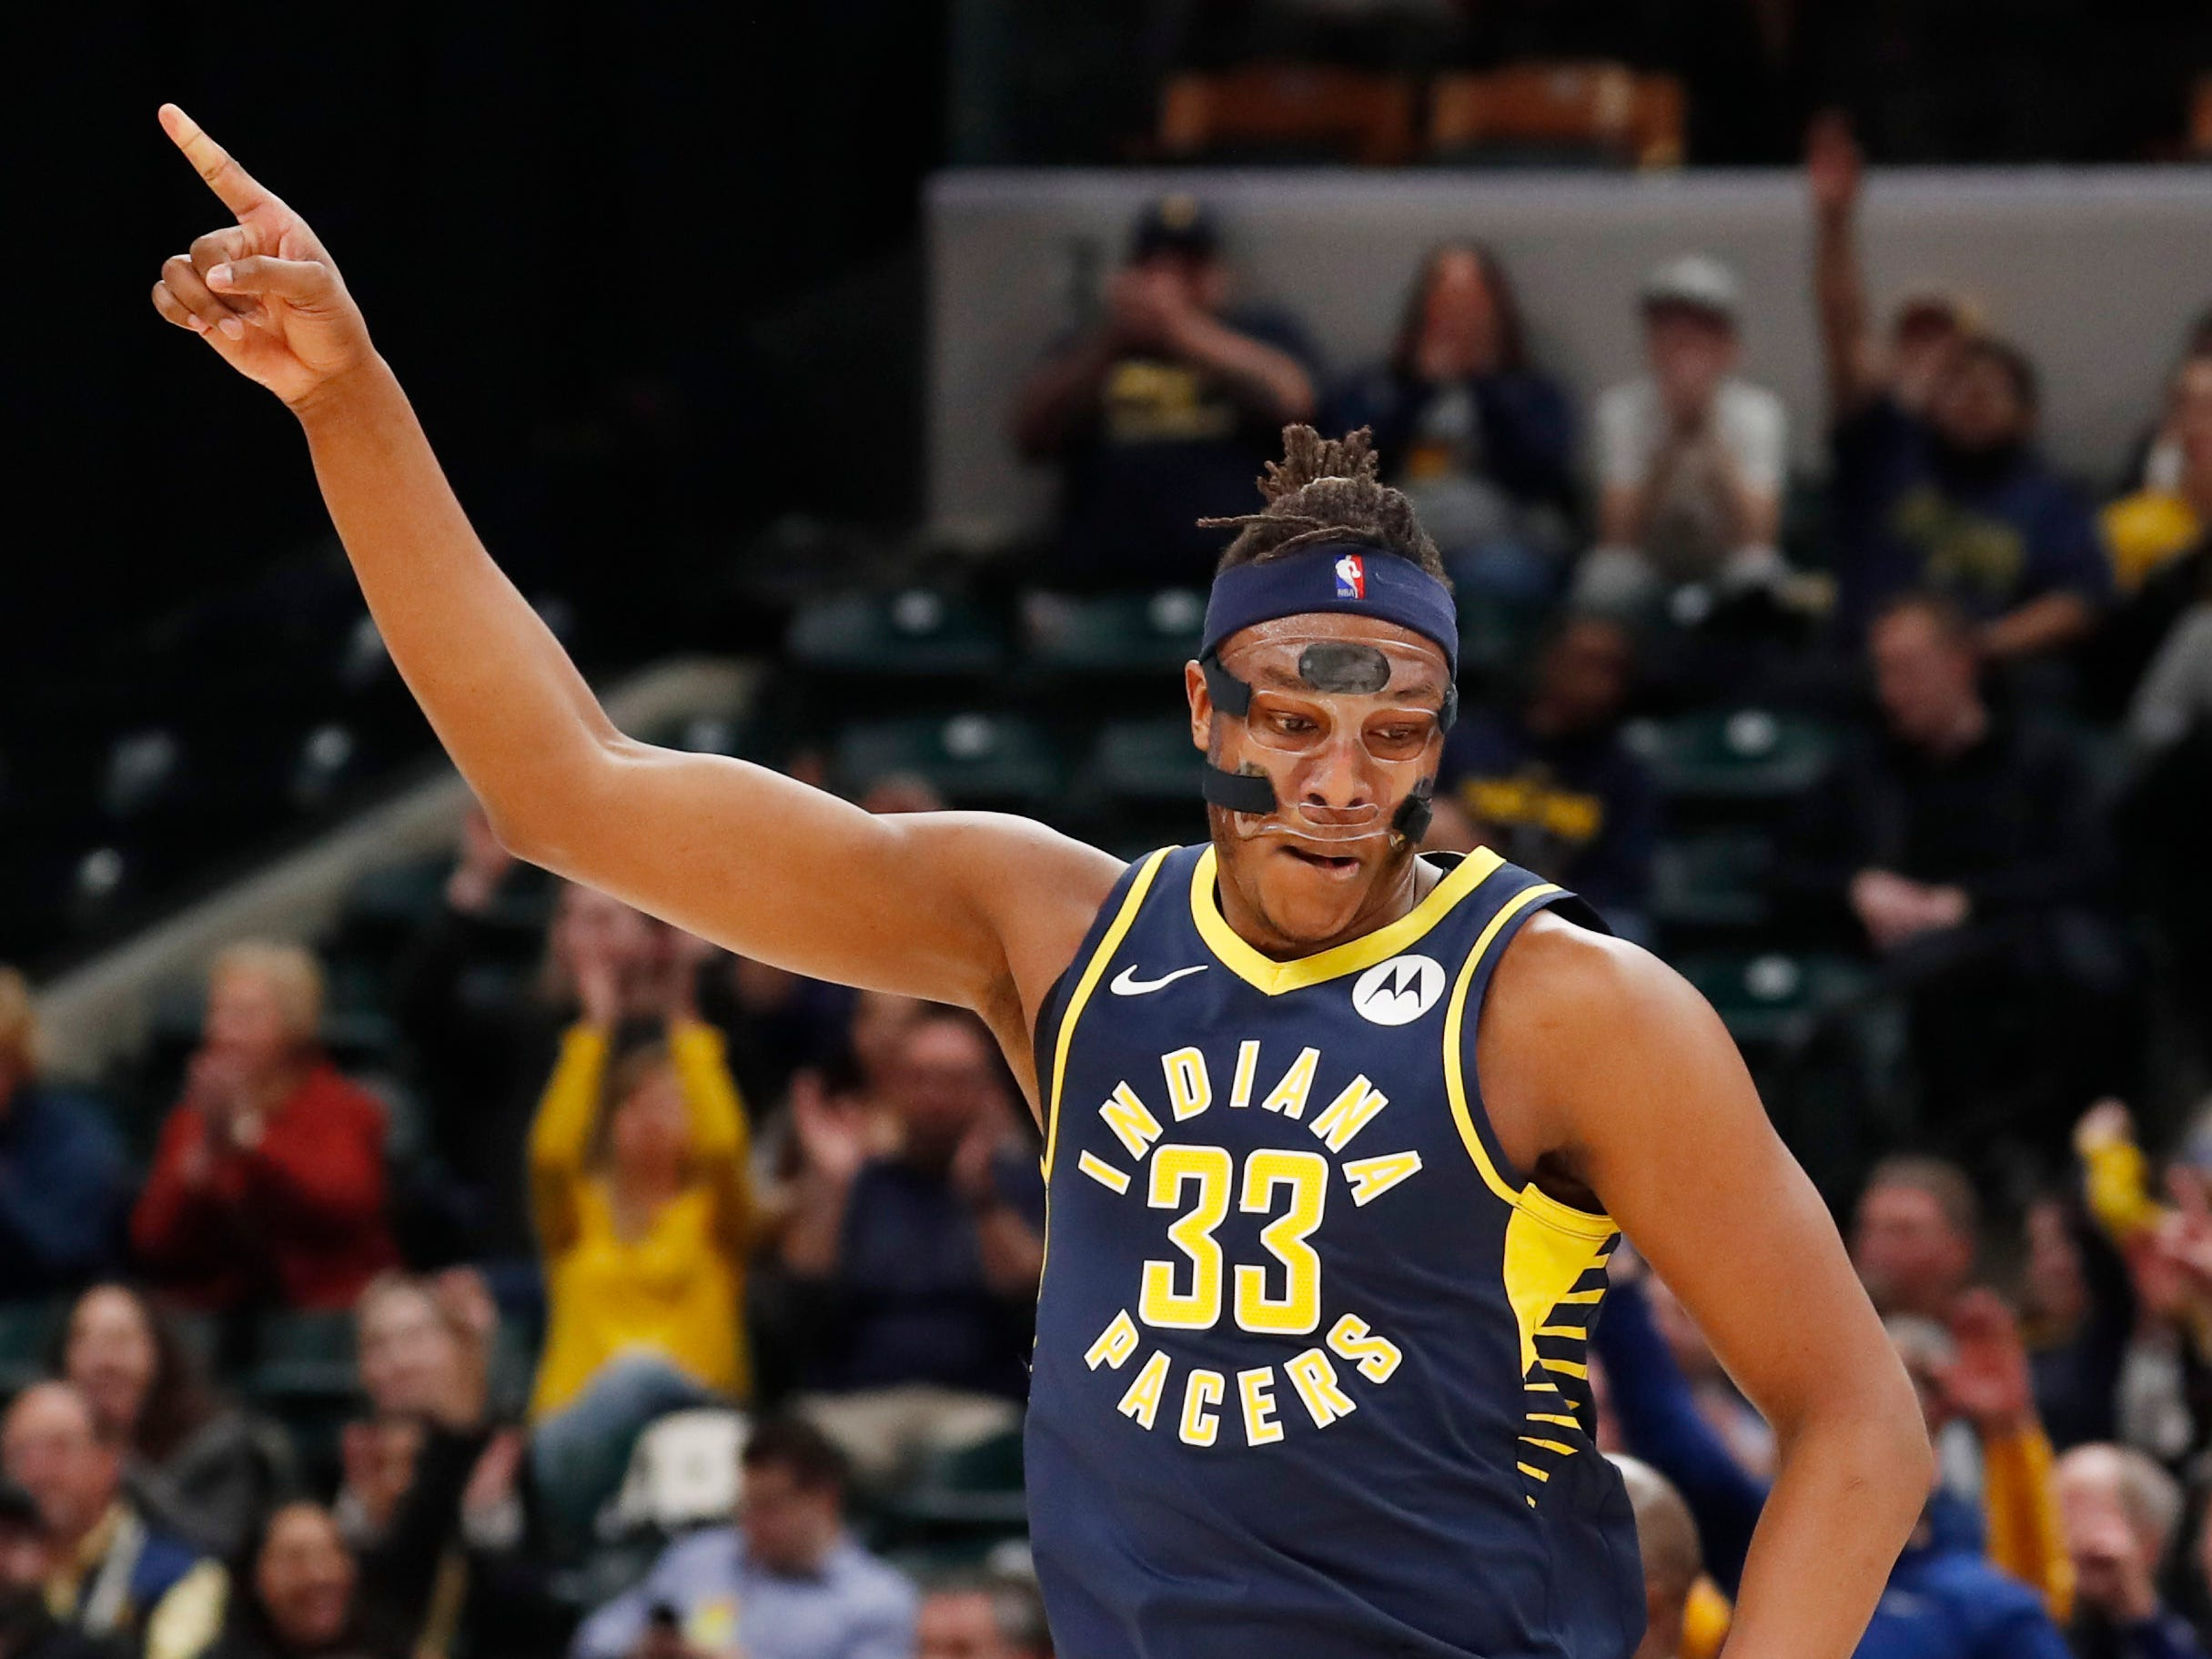 Feb 11, 2019; Indianapolis, IN, USA; Indiana Pacers center Myles Turner (33) reacts to making a three point shot against the Charlotte Hornets during the first quarter at Bankers Life Fieldhouse.